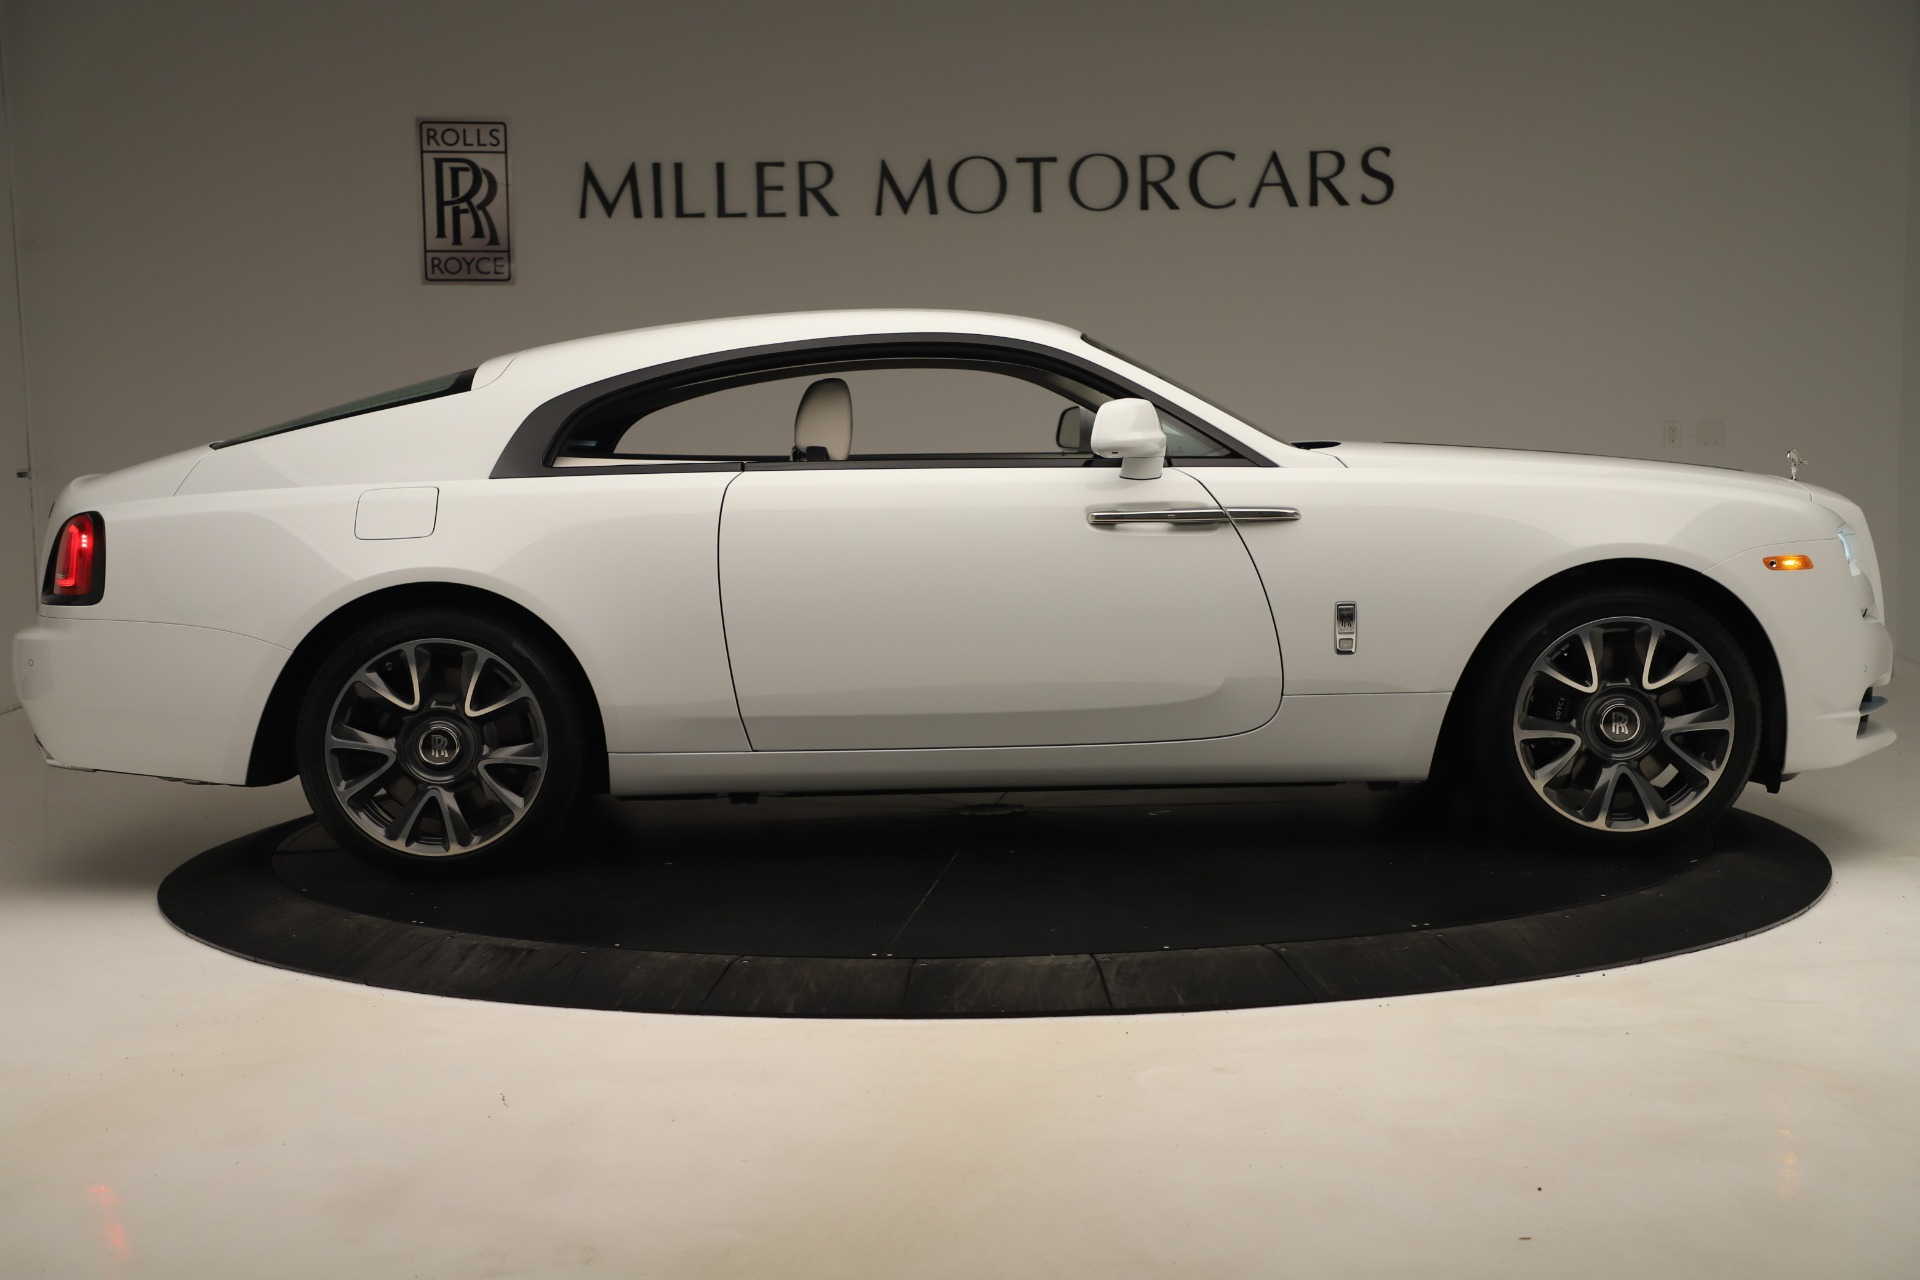 New 2019 Rolls-Royce Wraith  For Sale In Greenwich, CT 3166_p7